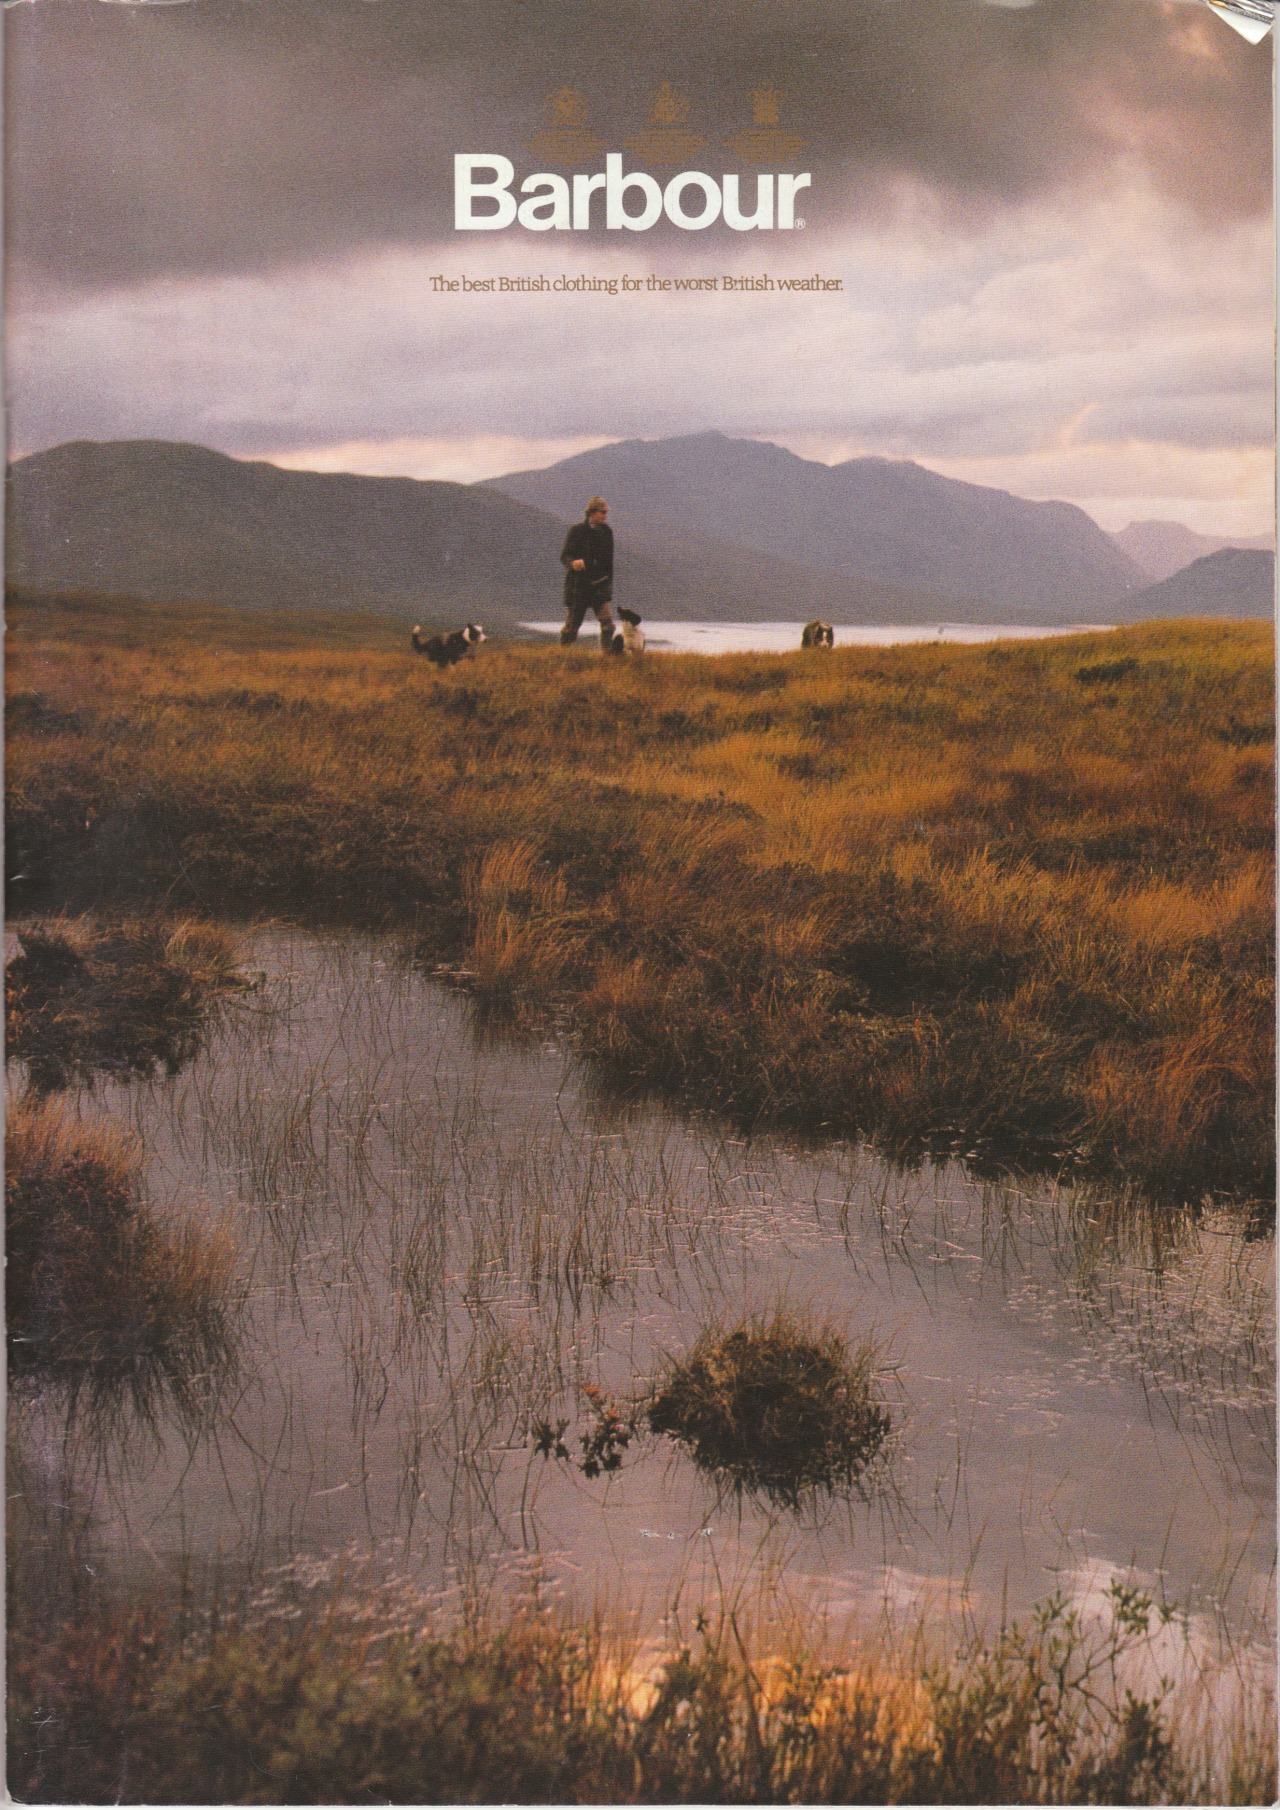 Barbour 1987 catalog cover.  More to come soon.